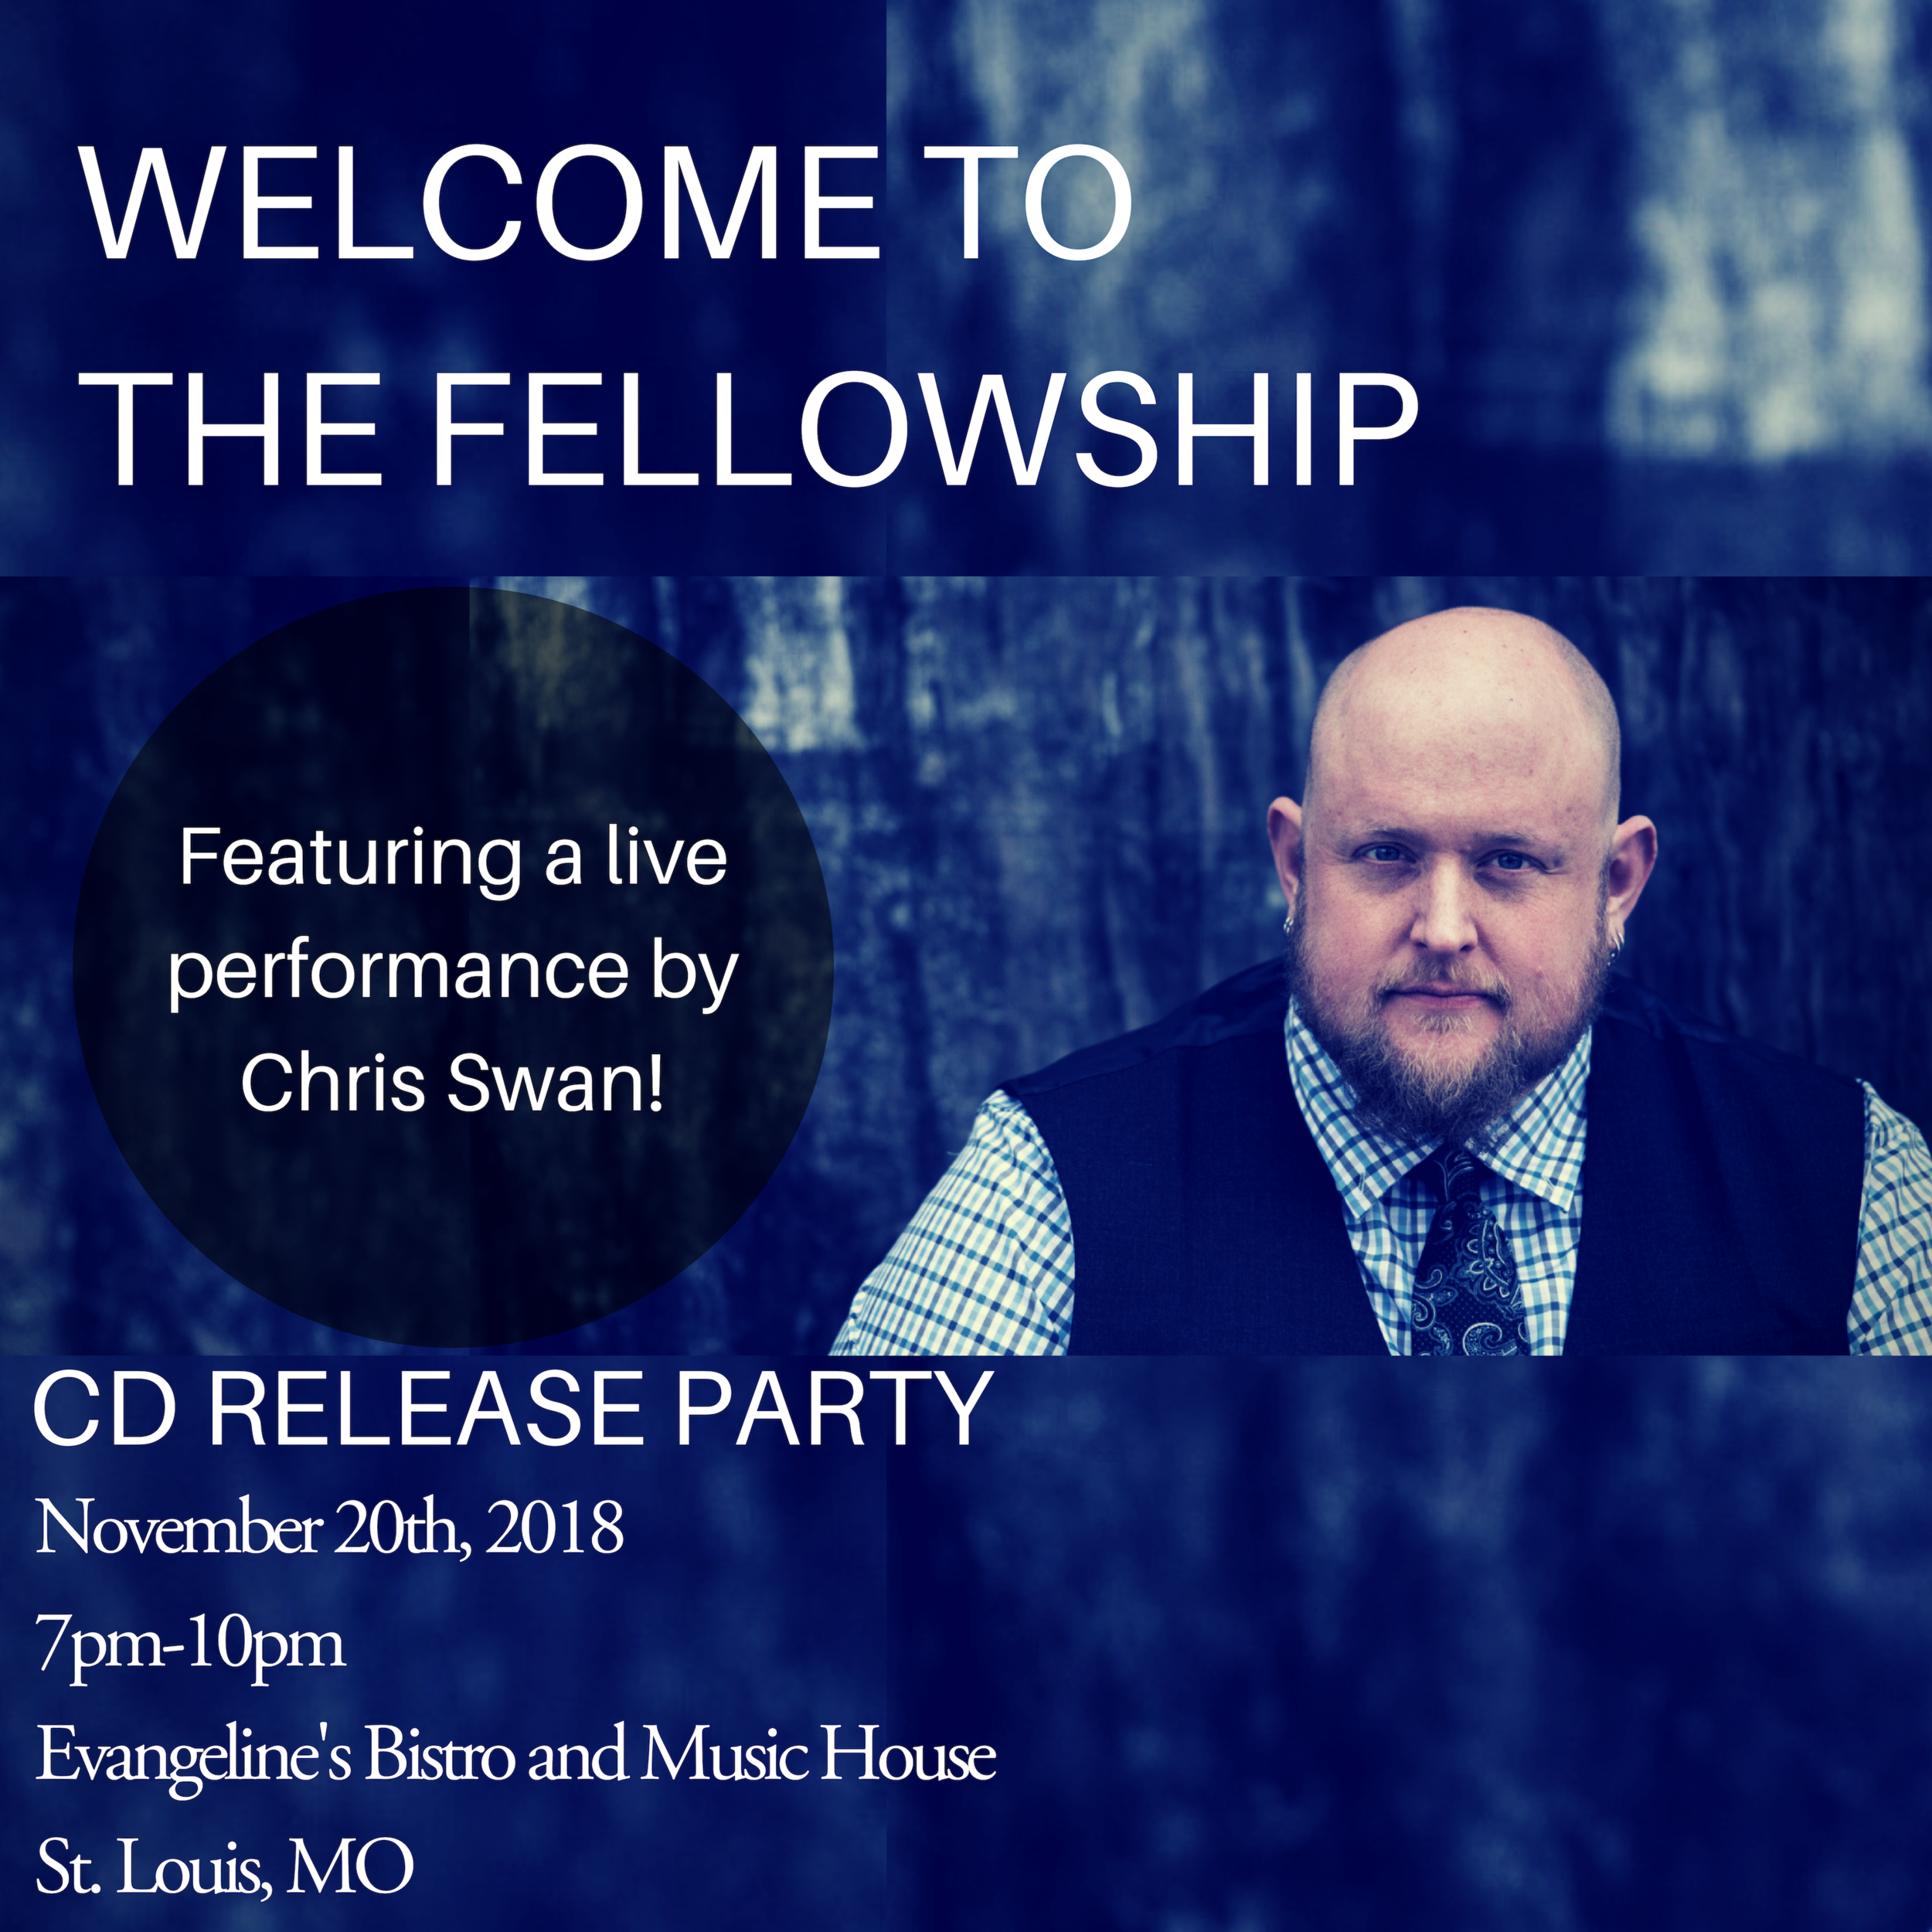 Fellowship CD Release Party.png